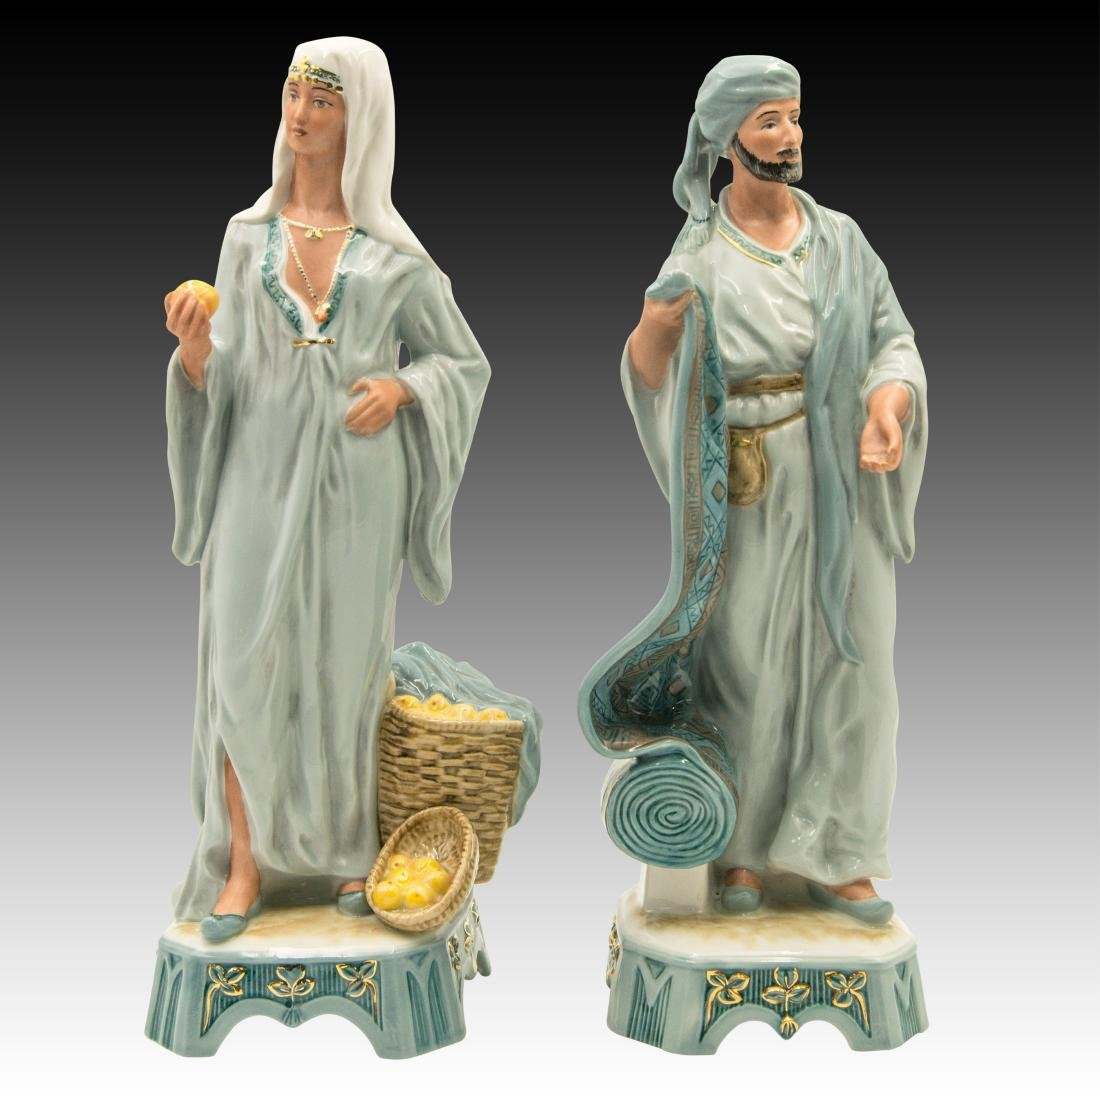 Royal Dux Middle Eastern Street Vendors Figurines